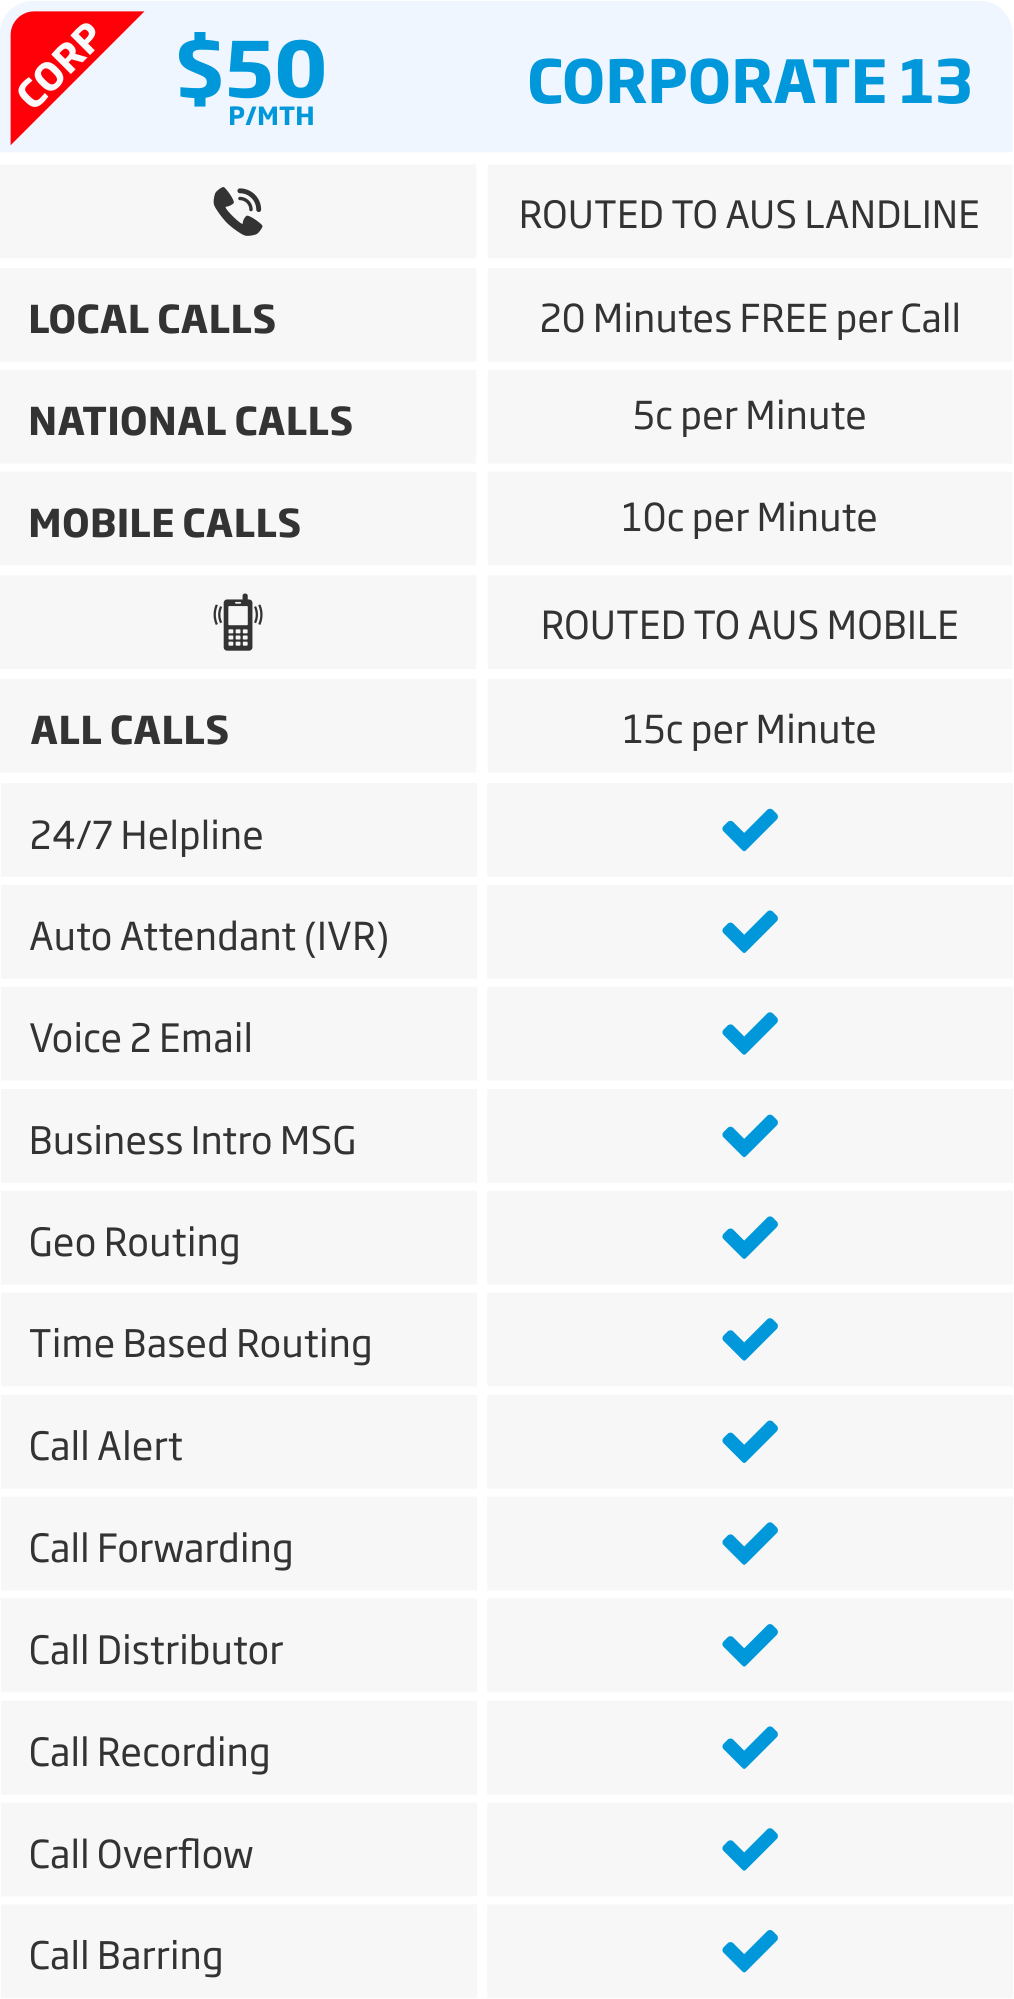 13-number-plans-call-charges-rates-costs-rate-table-261016.png